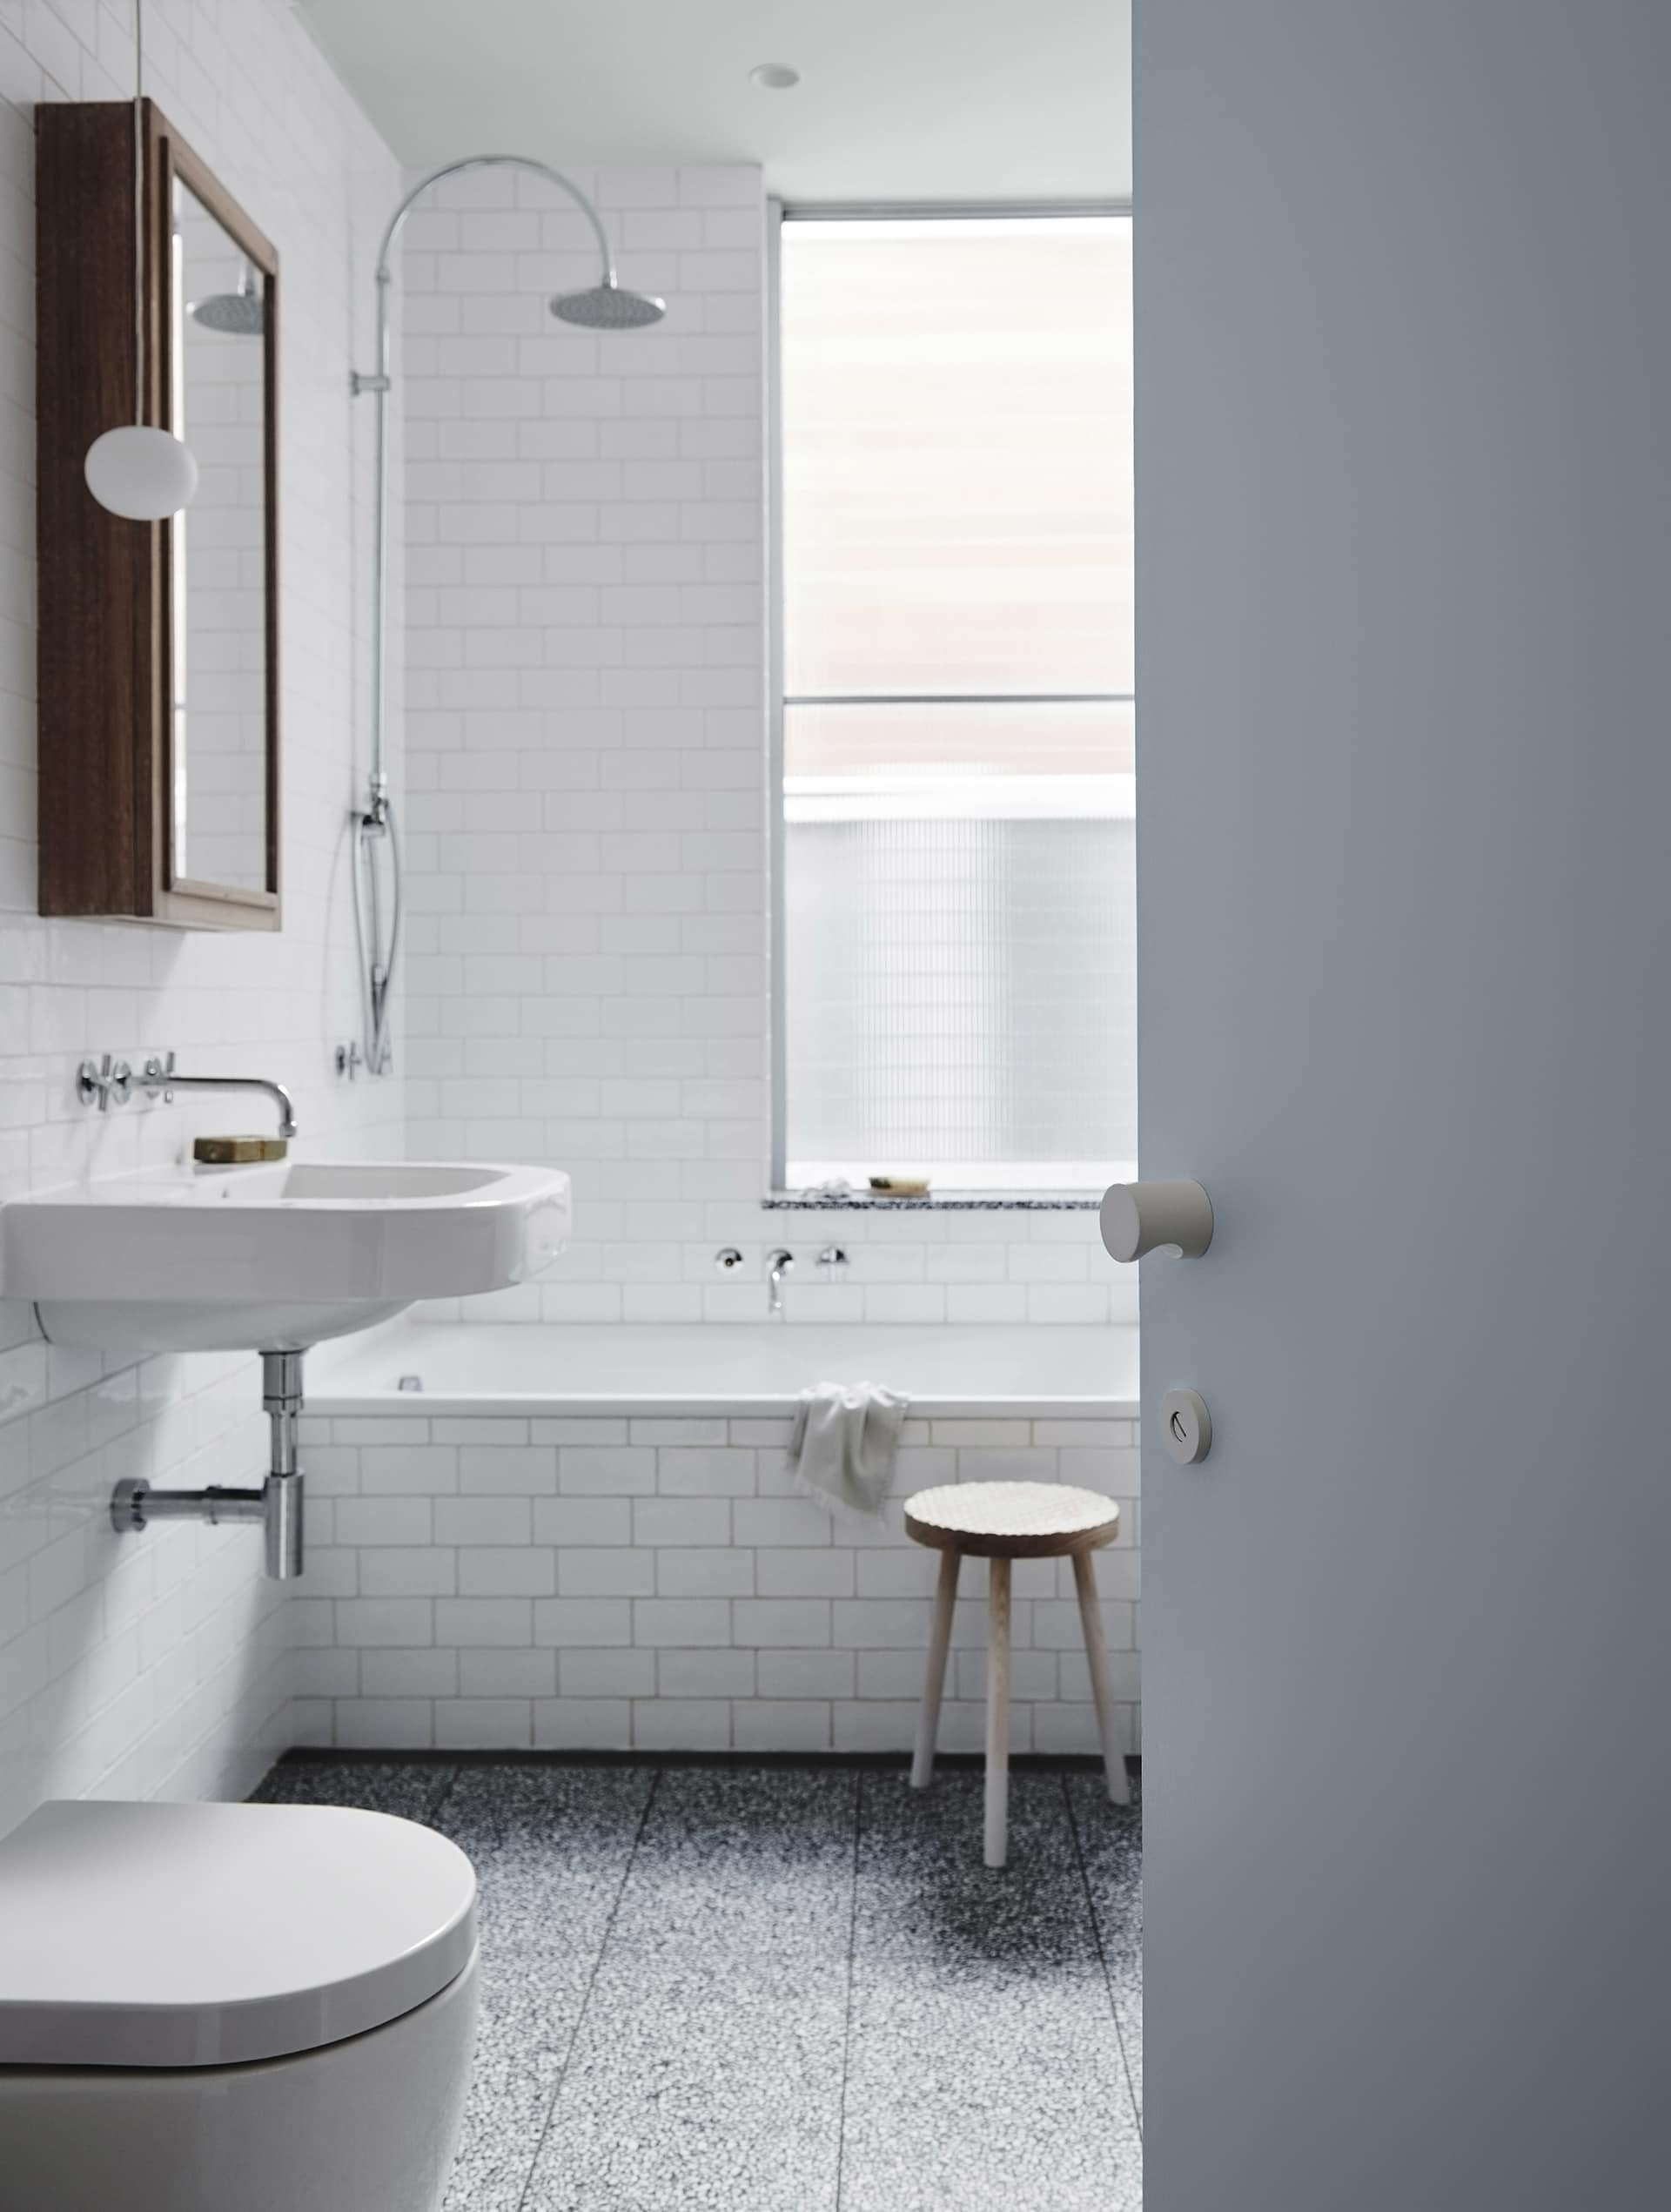 white subway tile bathroom with powder blue bathroom door from dulux